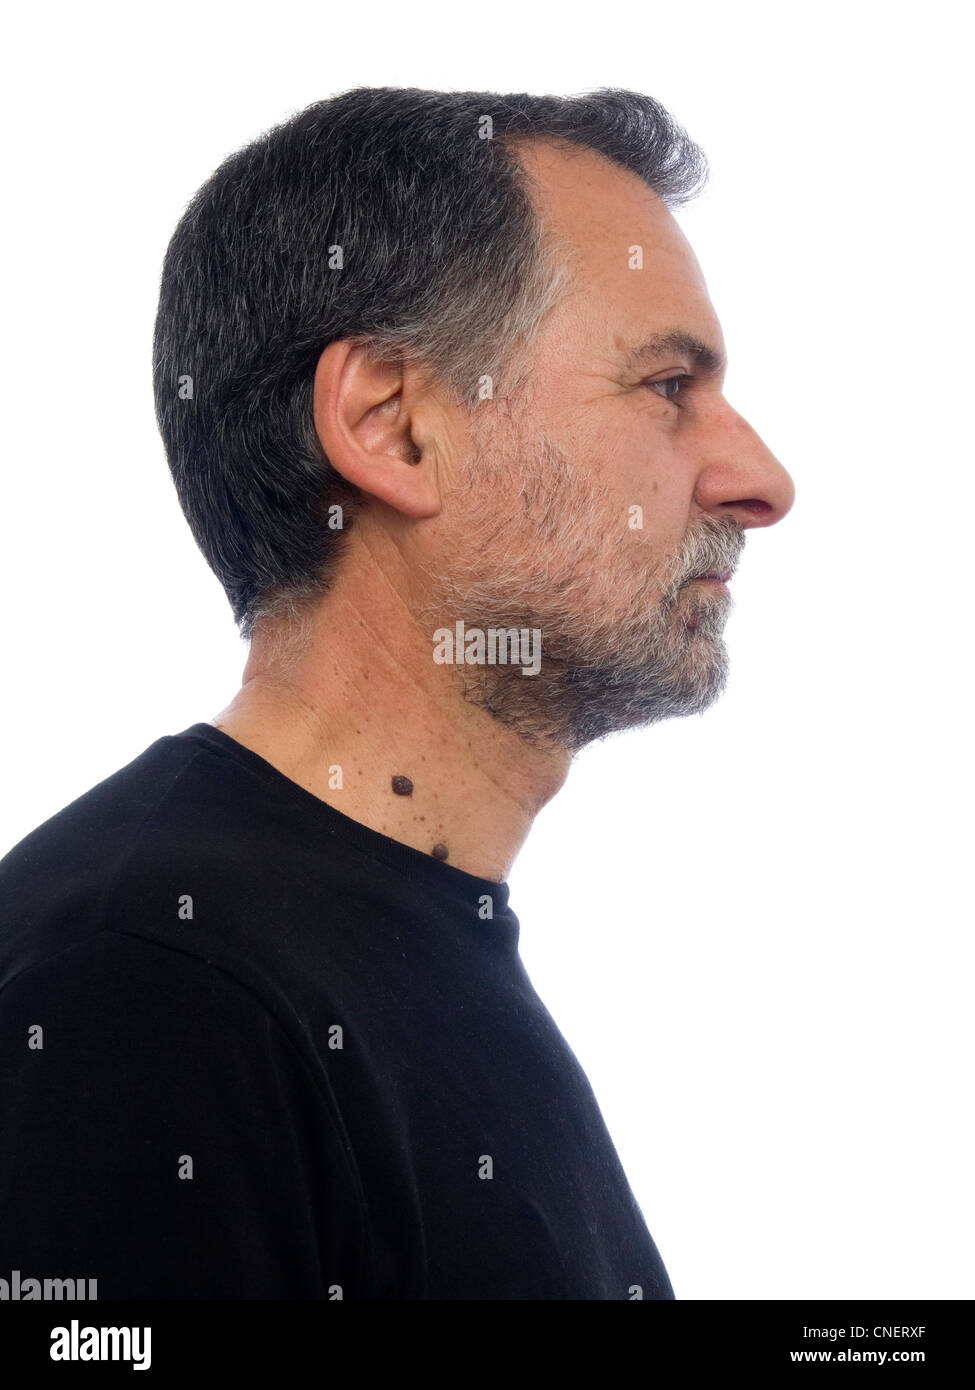 Profile portrait of a bearded middle-aged man - Stock Image